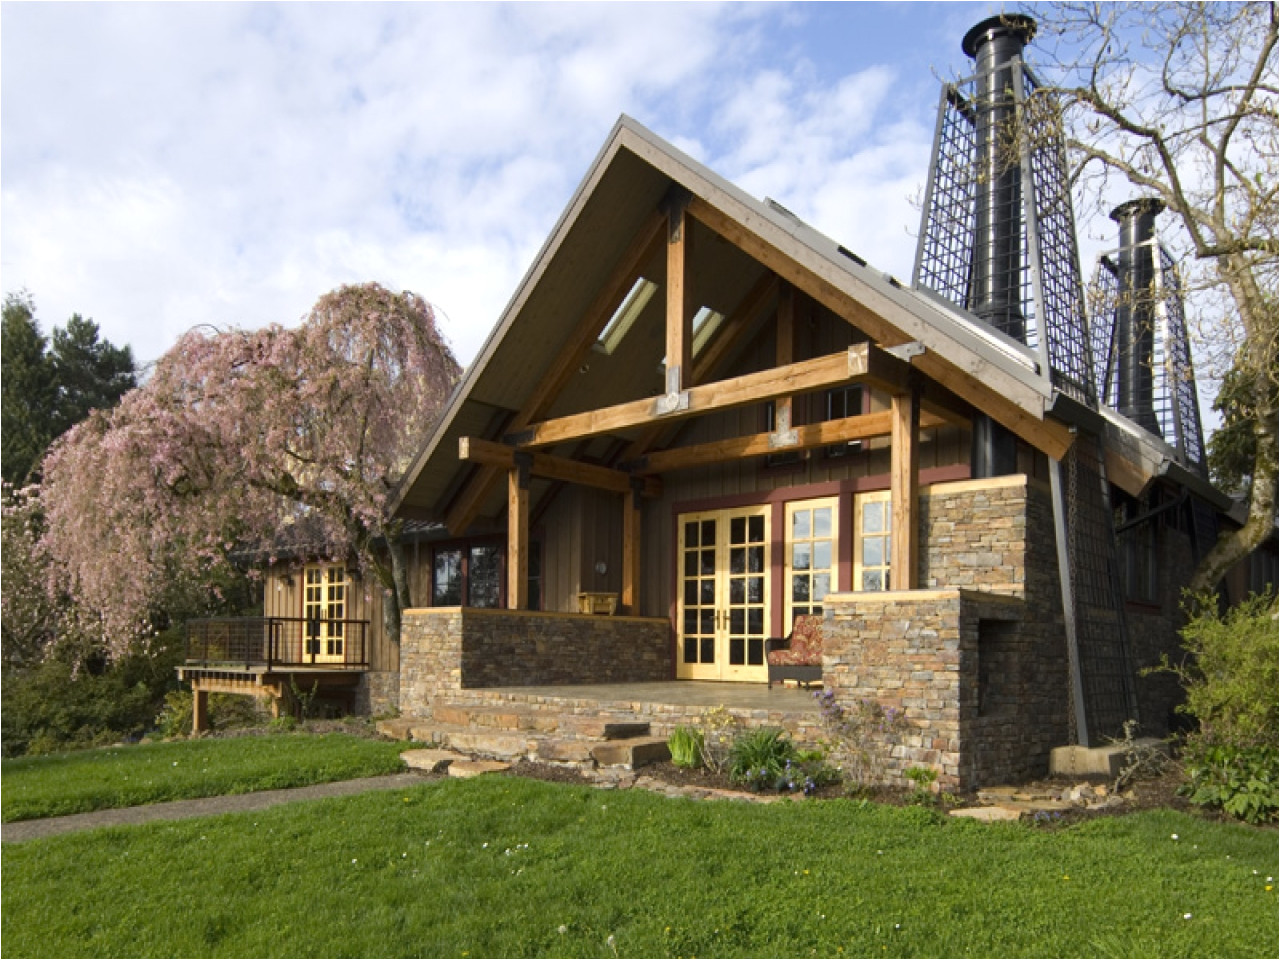 b2f2b5f163c40278 stone cottage in the woods wood and stone house exteriors